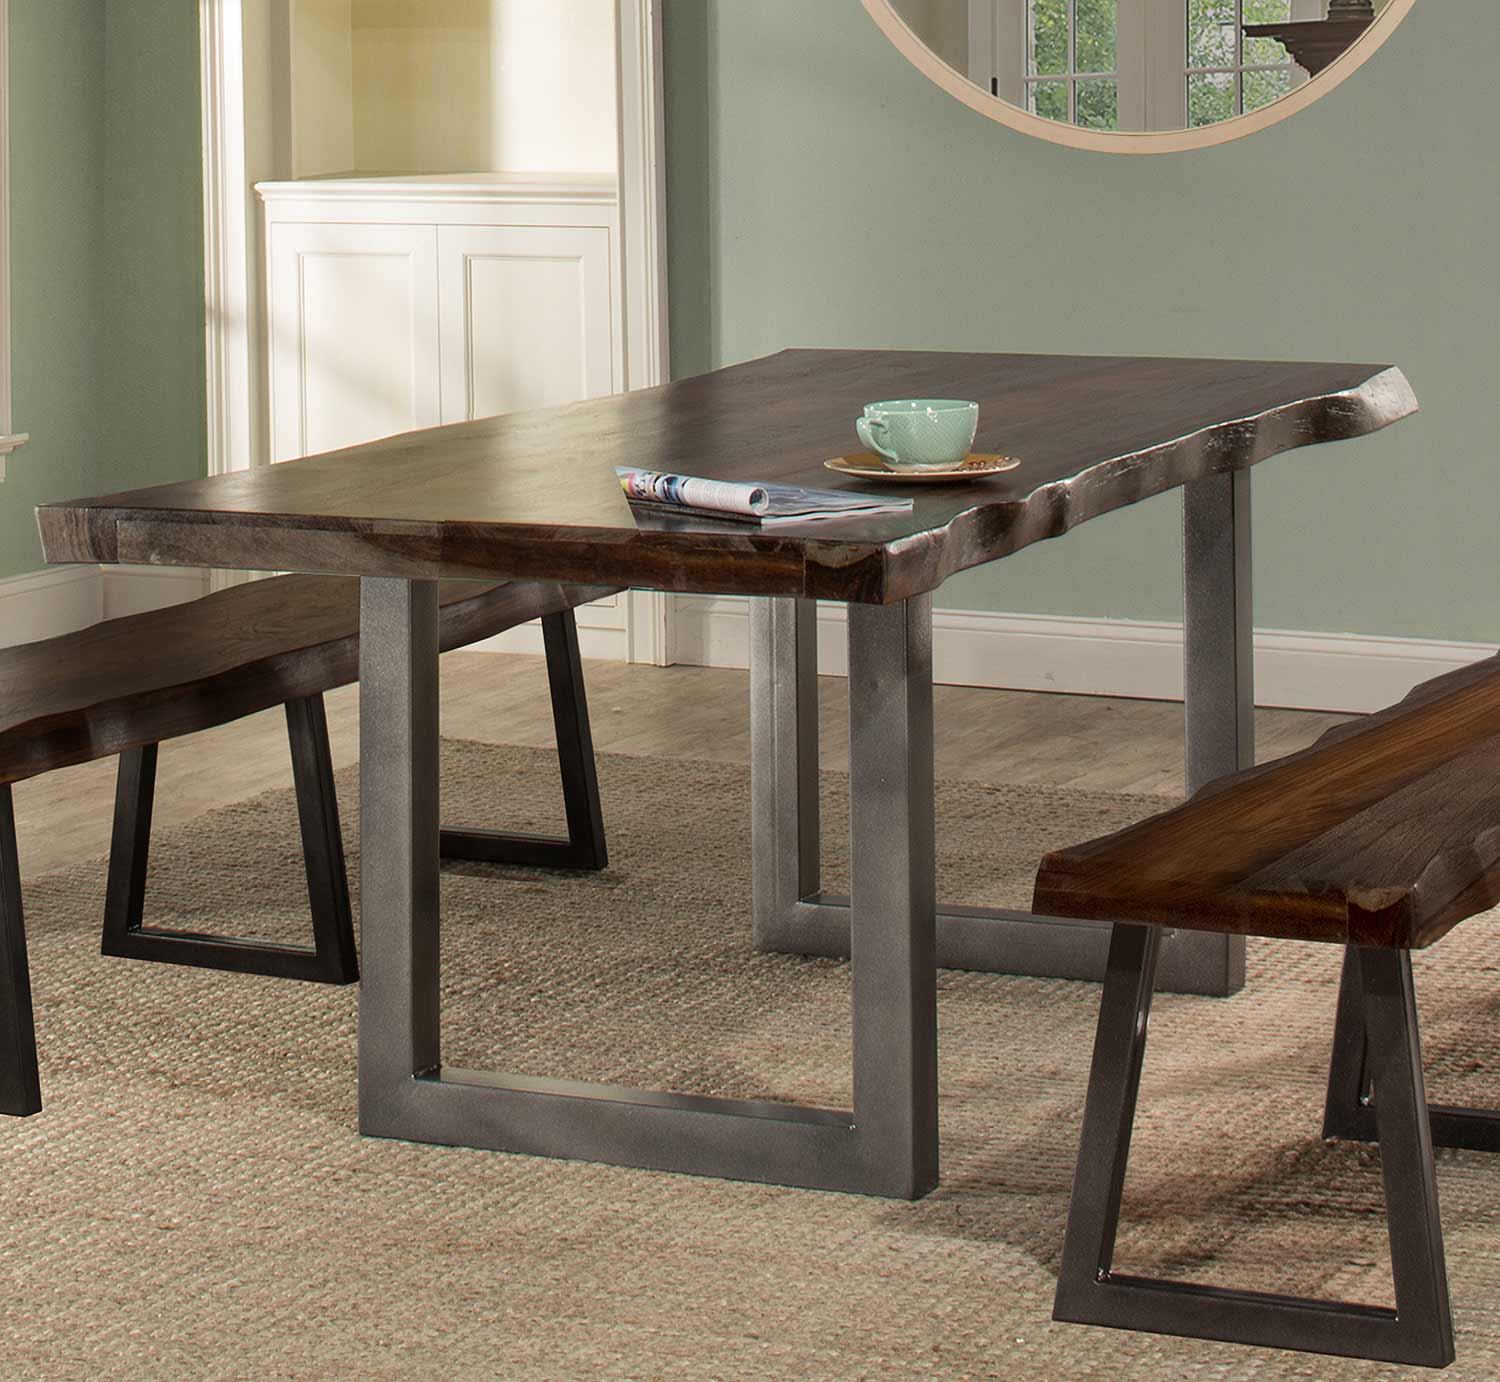 Hillsdale Emerson Rectangle Dining Table - Gray Sheesham